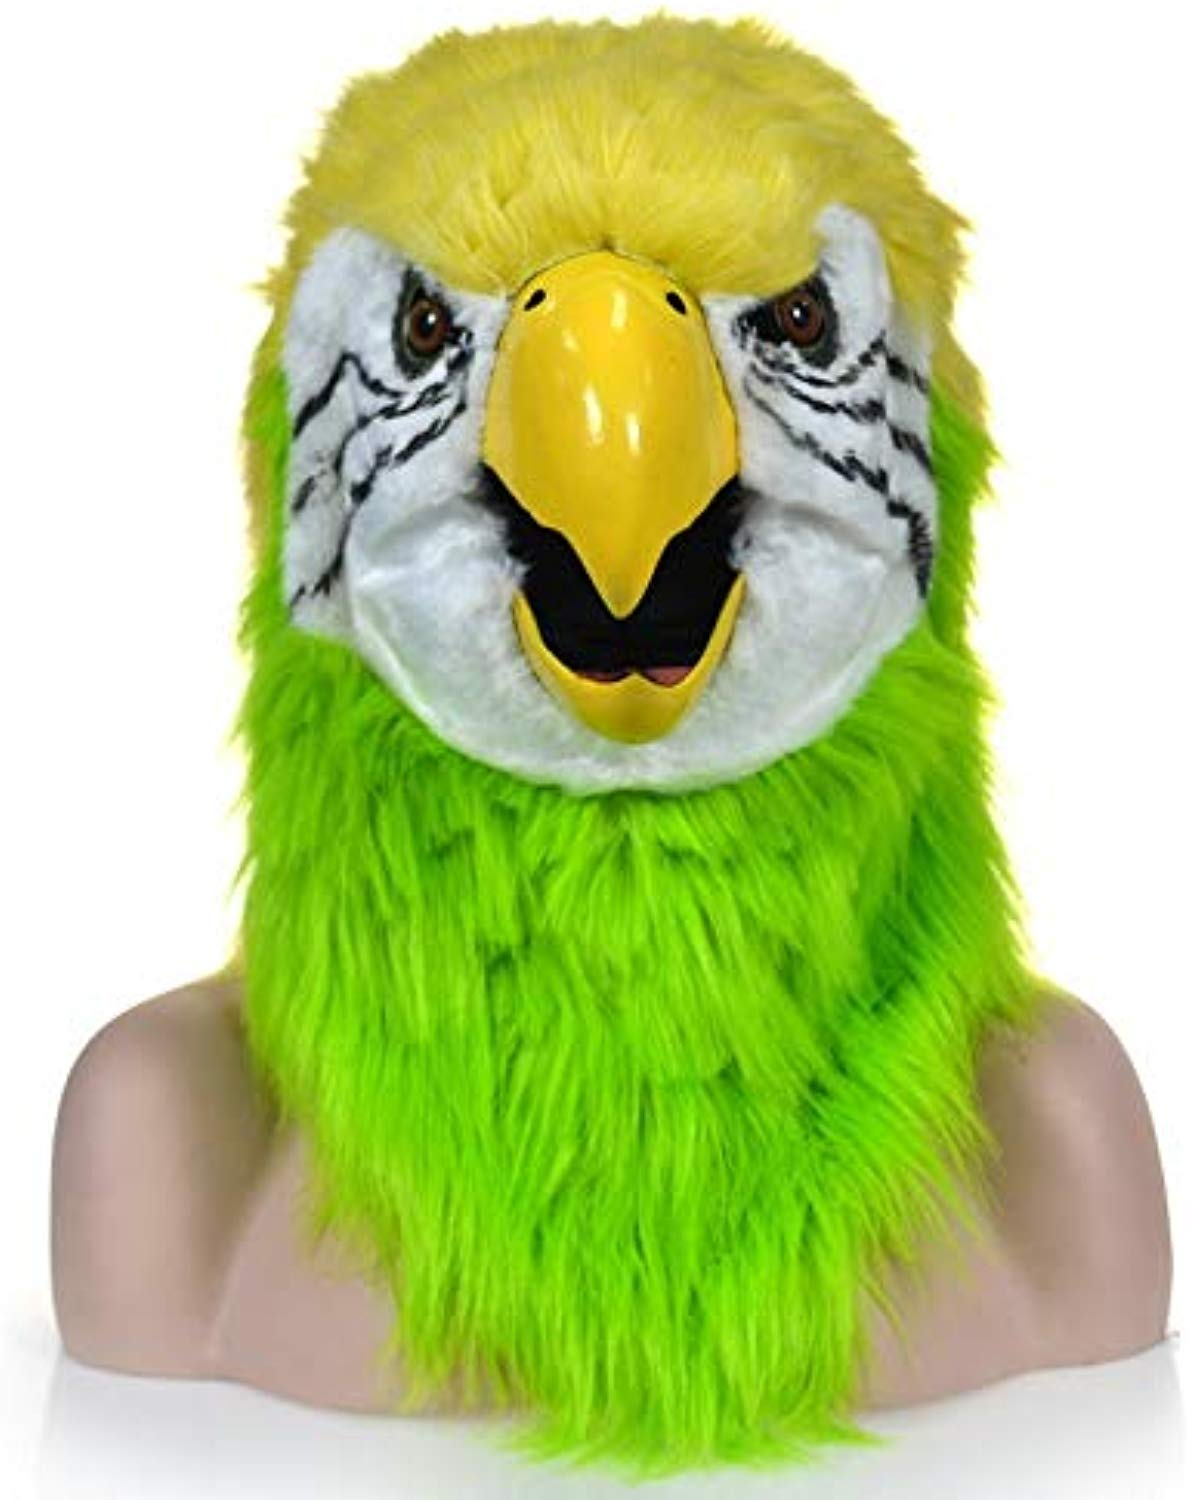 HNNH Masks Maschera for la Testa pelosa verde Pappagtuttio in Movimento Furry Animal Masks ( Coloree   gituttio )